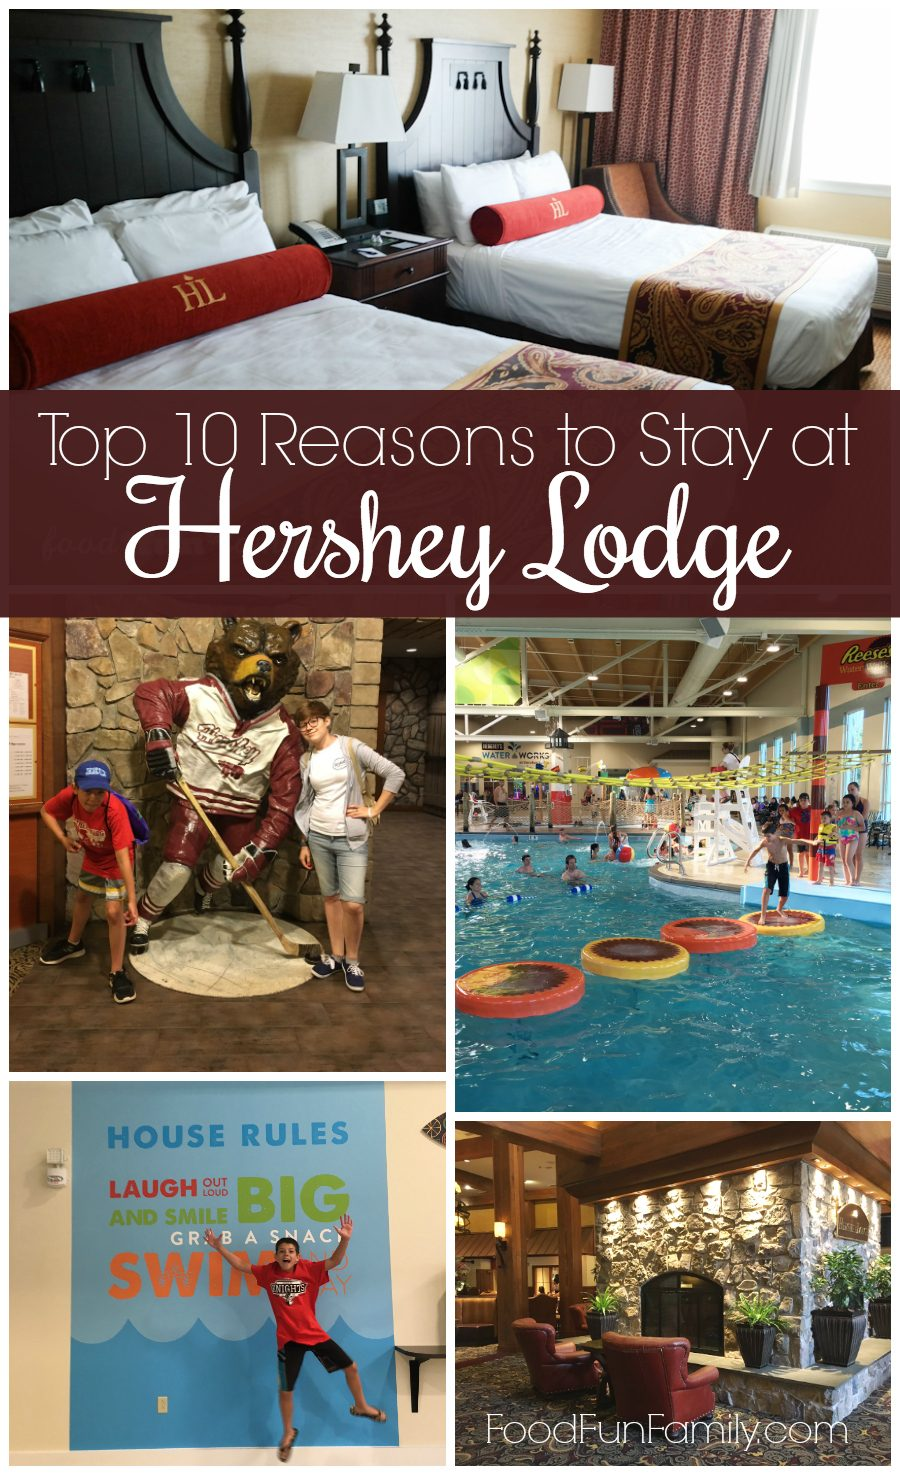 Top 10 reasons to stay at Hershey Lodge (whether you're visiting Hersheypark or not!)